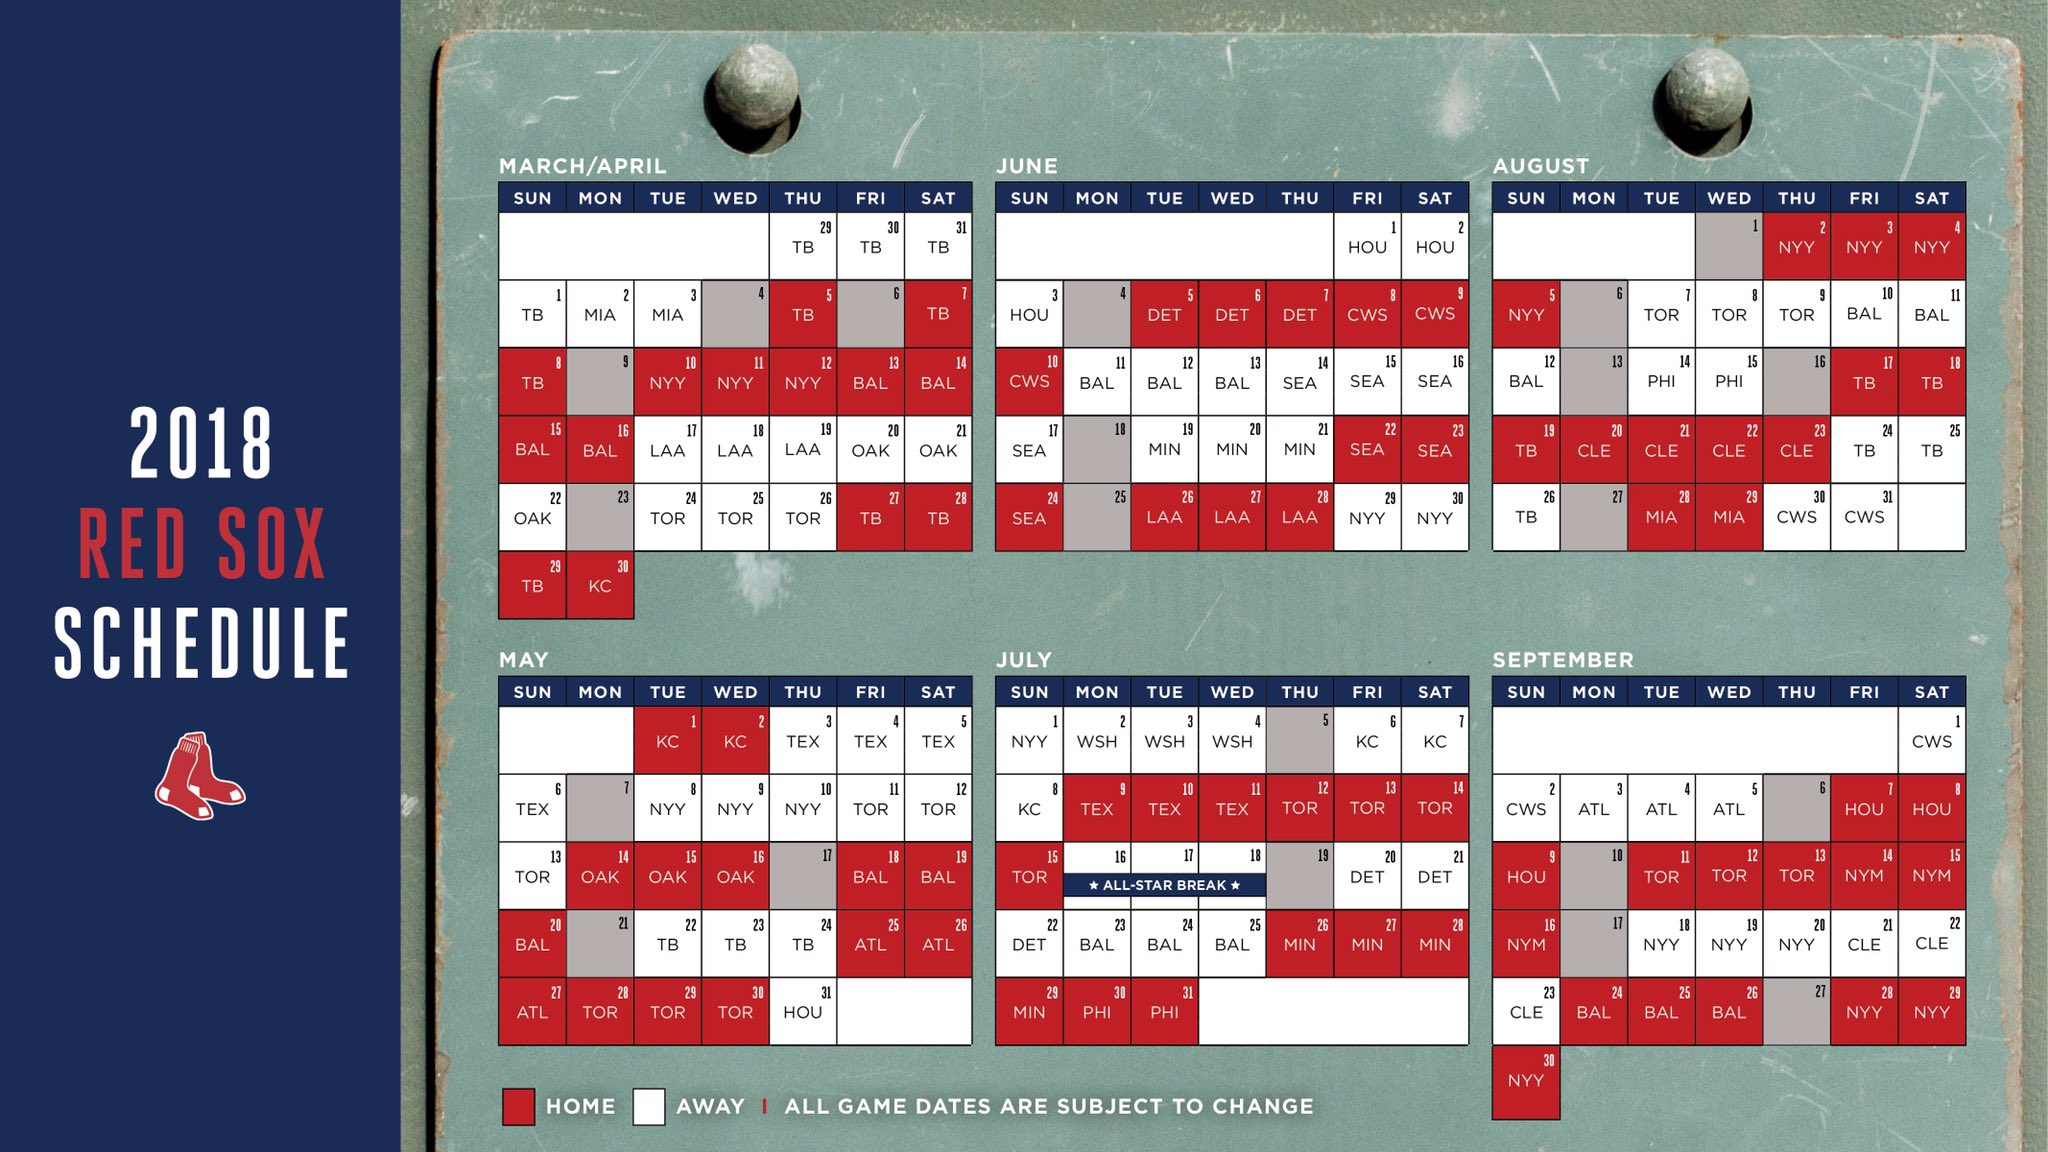 Here S The Entire Red Sox Schedule In A Single Image